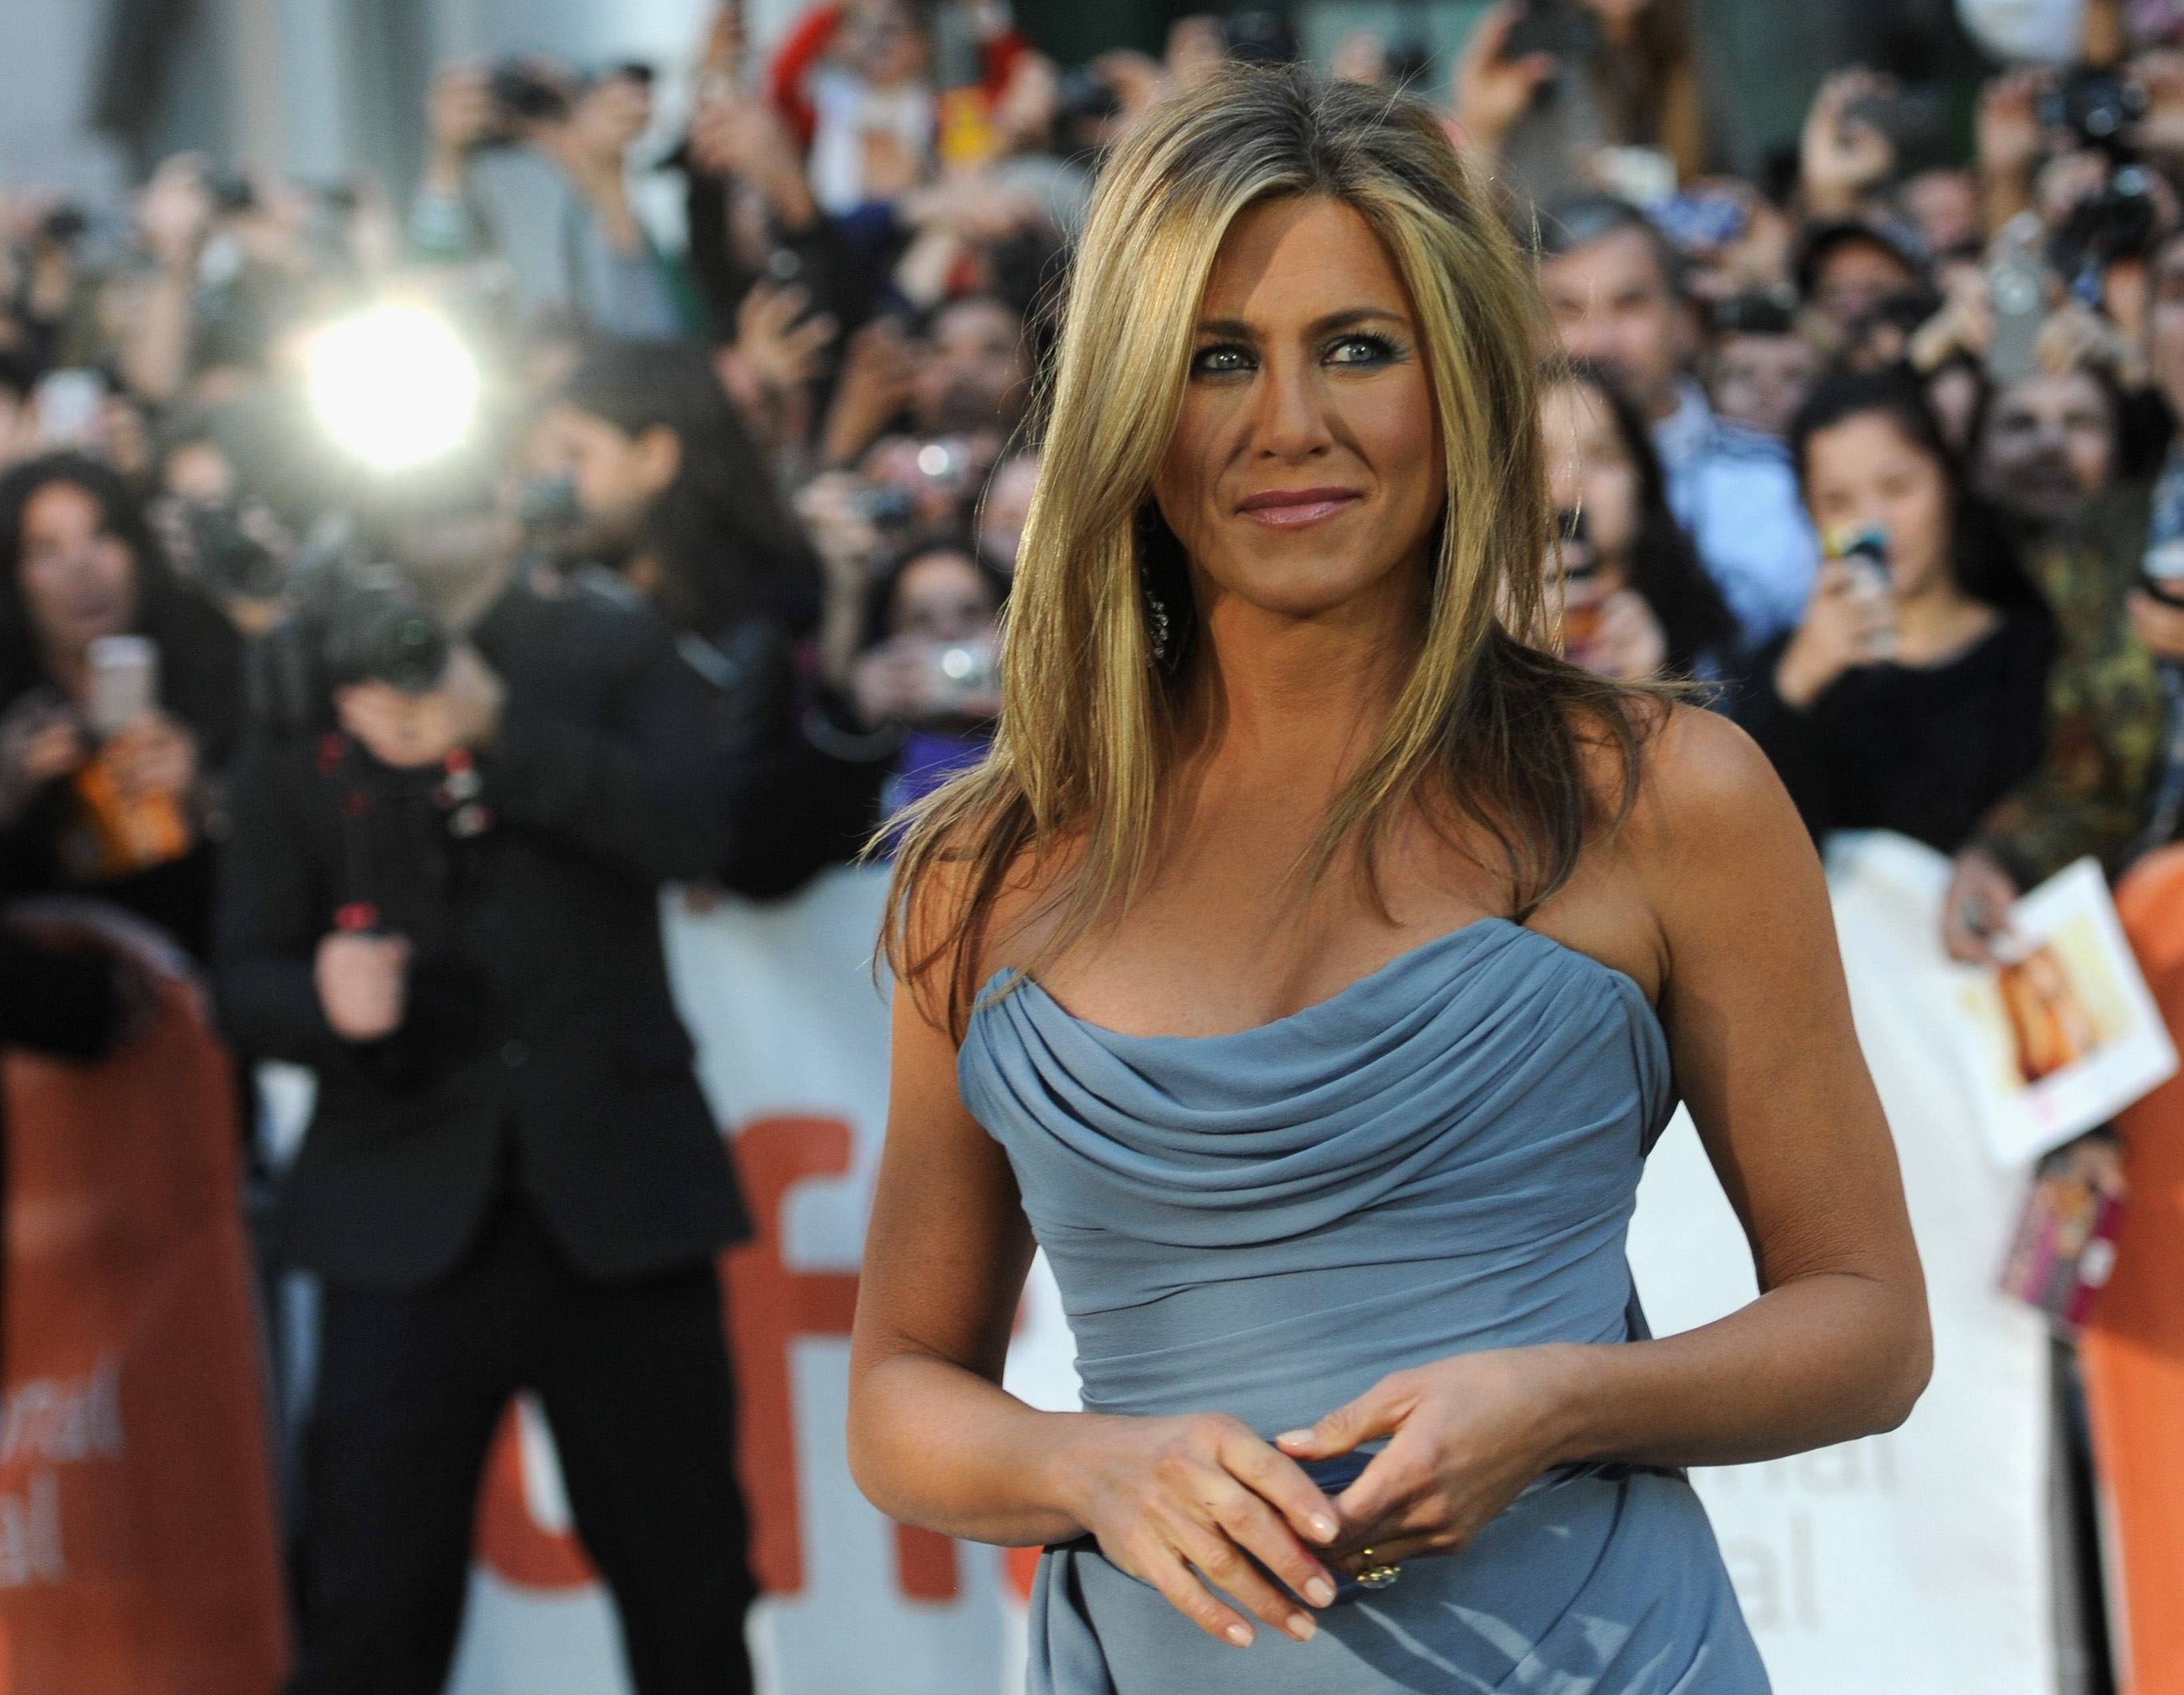 Il segreto di Jennifer Aniston per restare in forma? Le pillole di placenta (VIDEO)